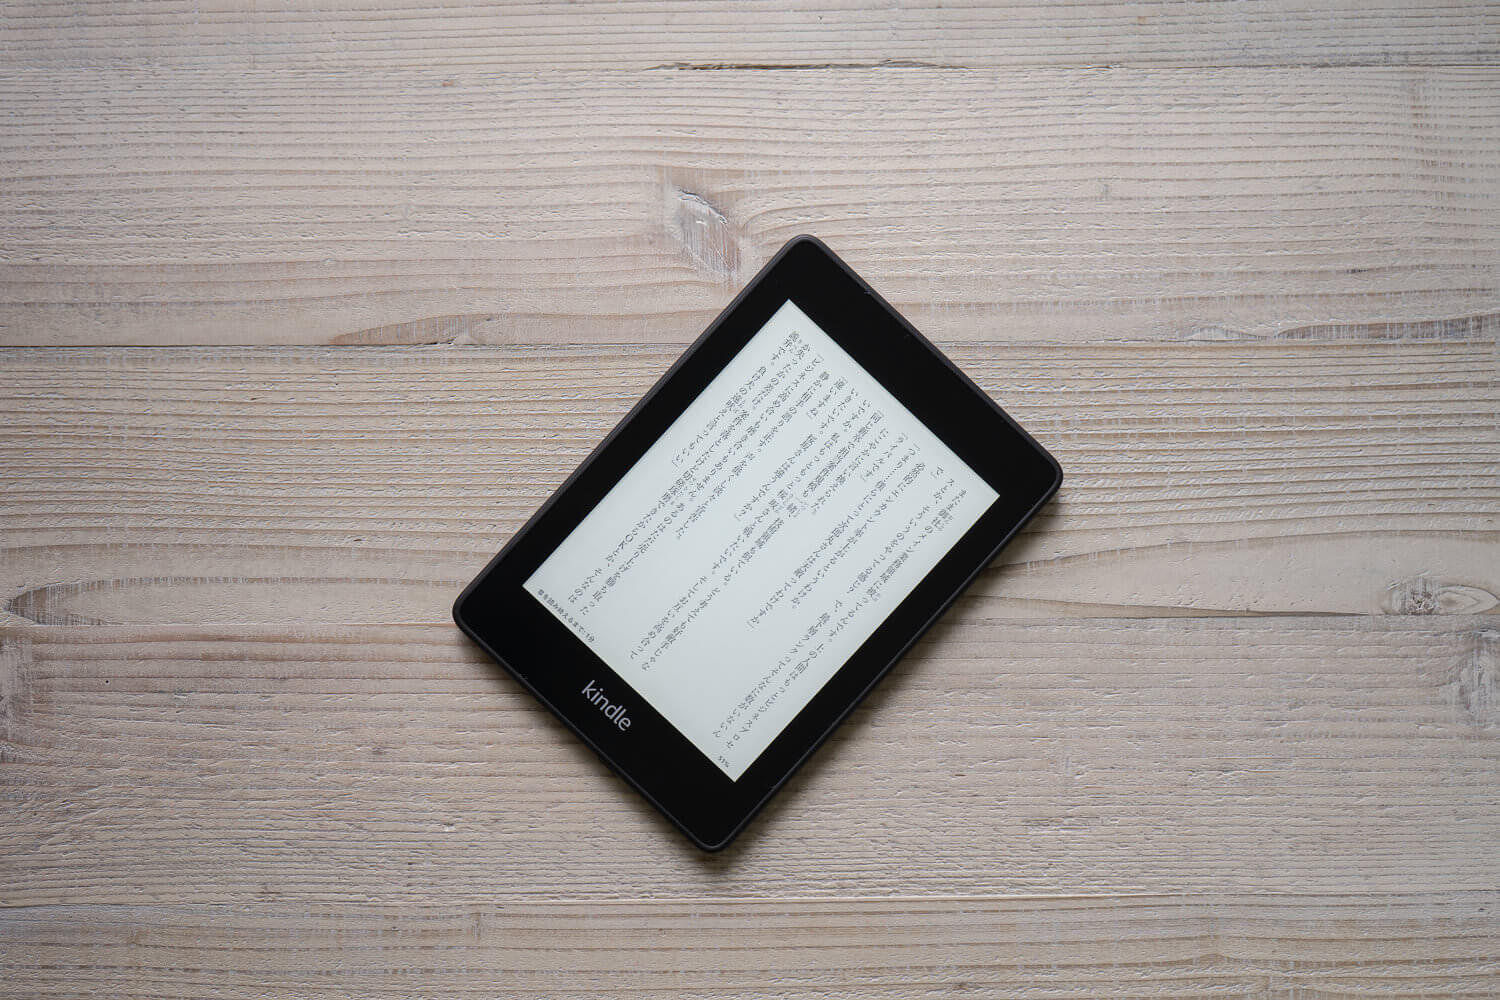 190105 kindle paperwhite 2018 10